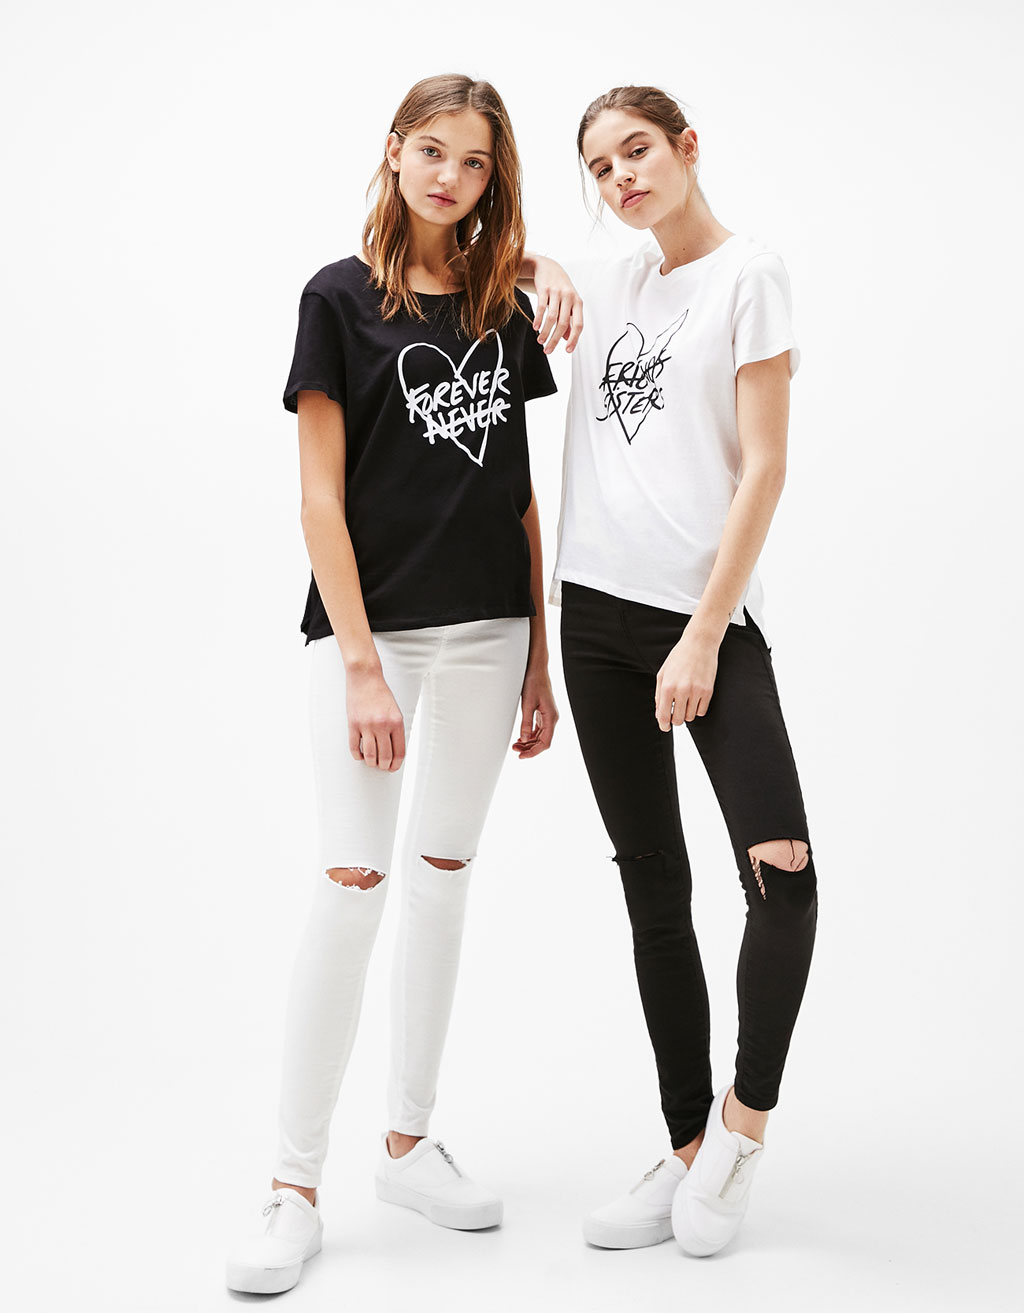 Forever/Sister printed T-shirt